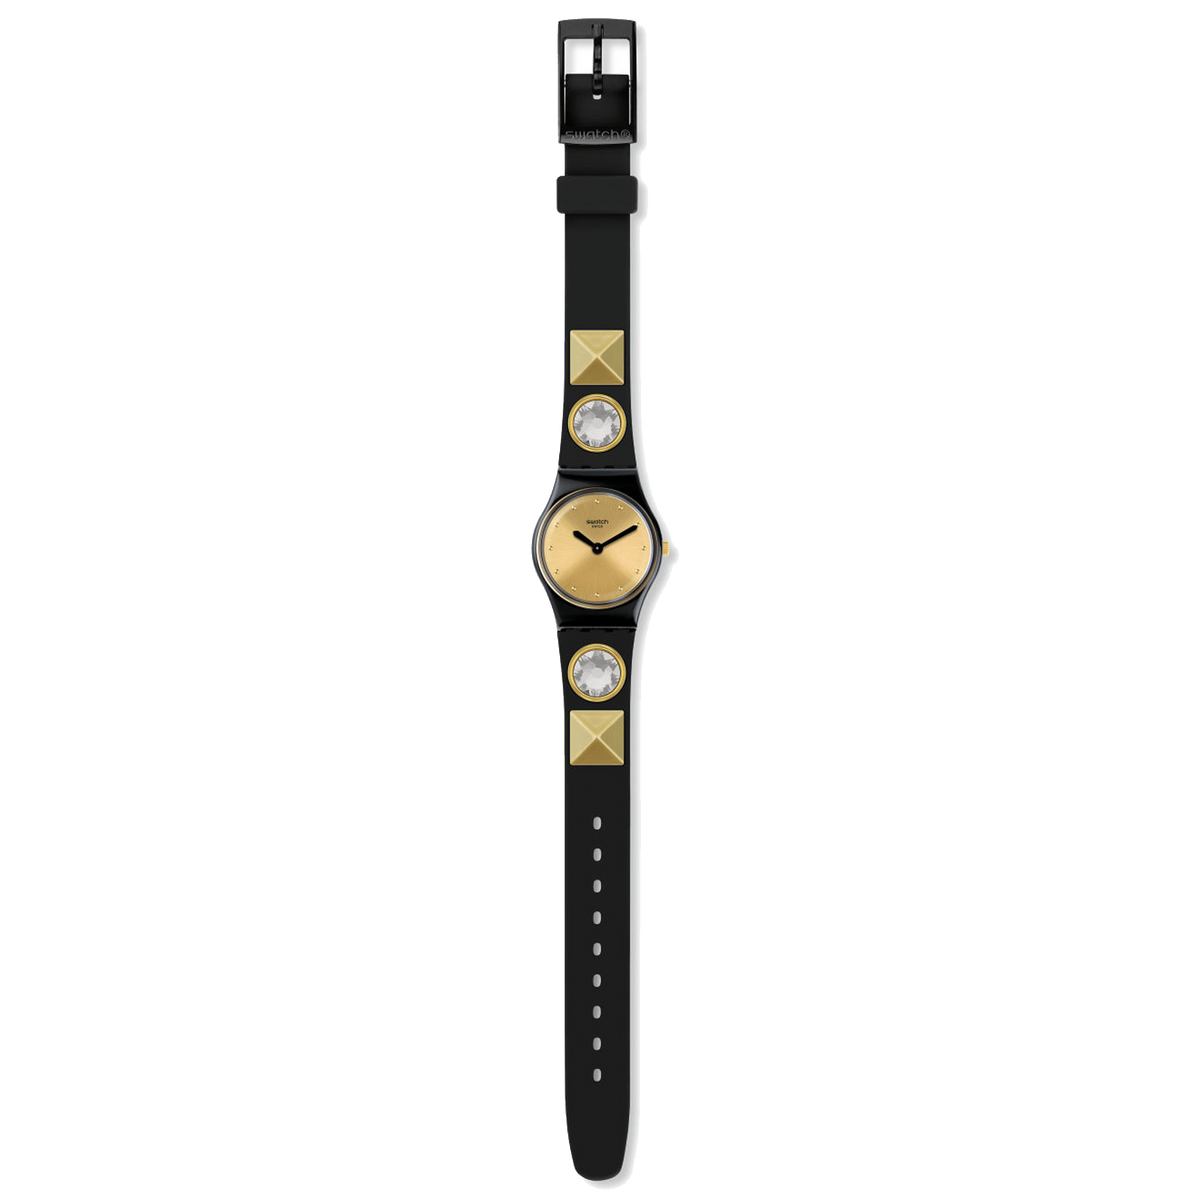 Swatch Watch 25mm - Ortrud